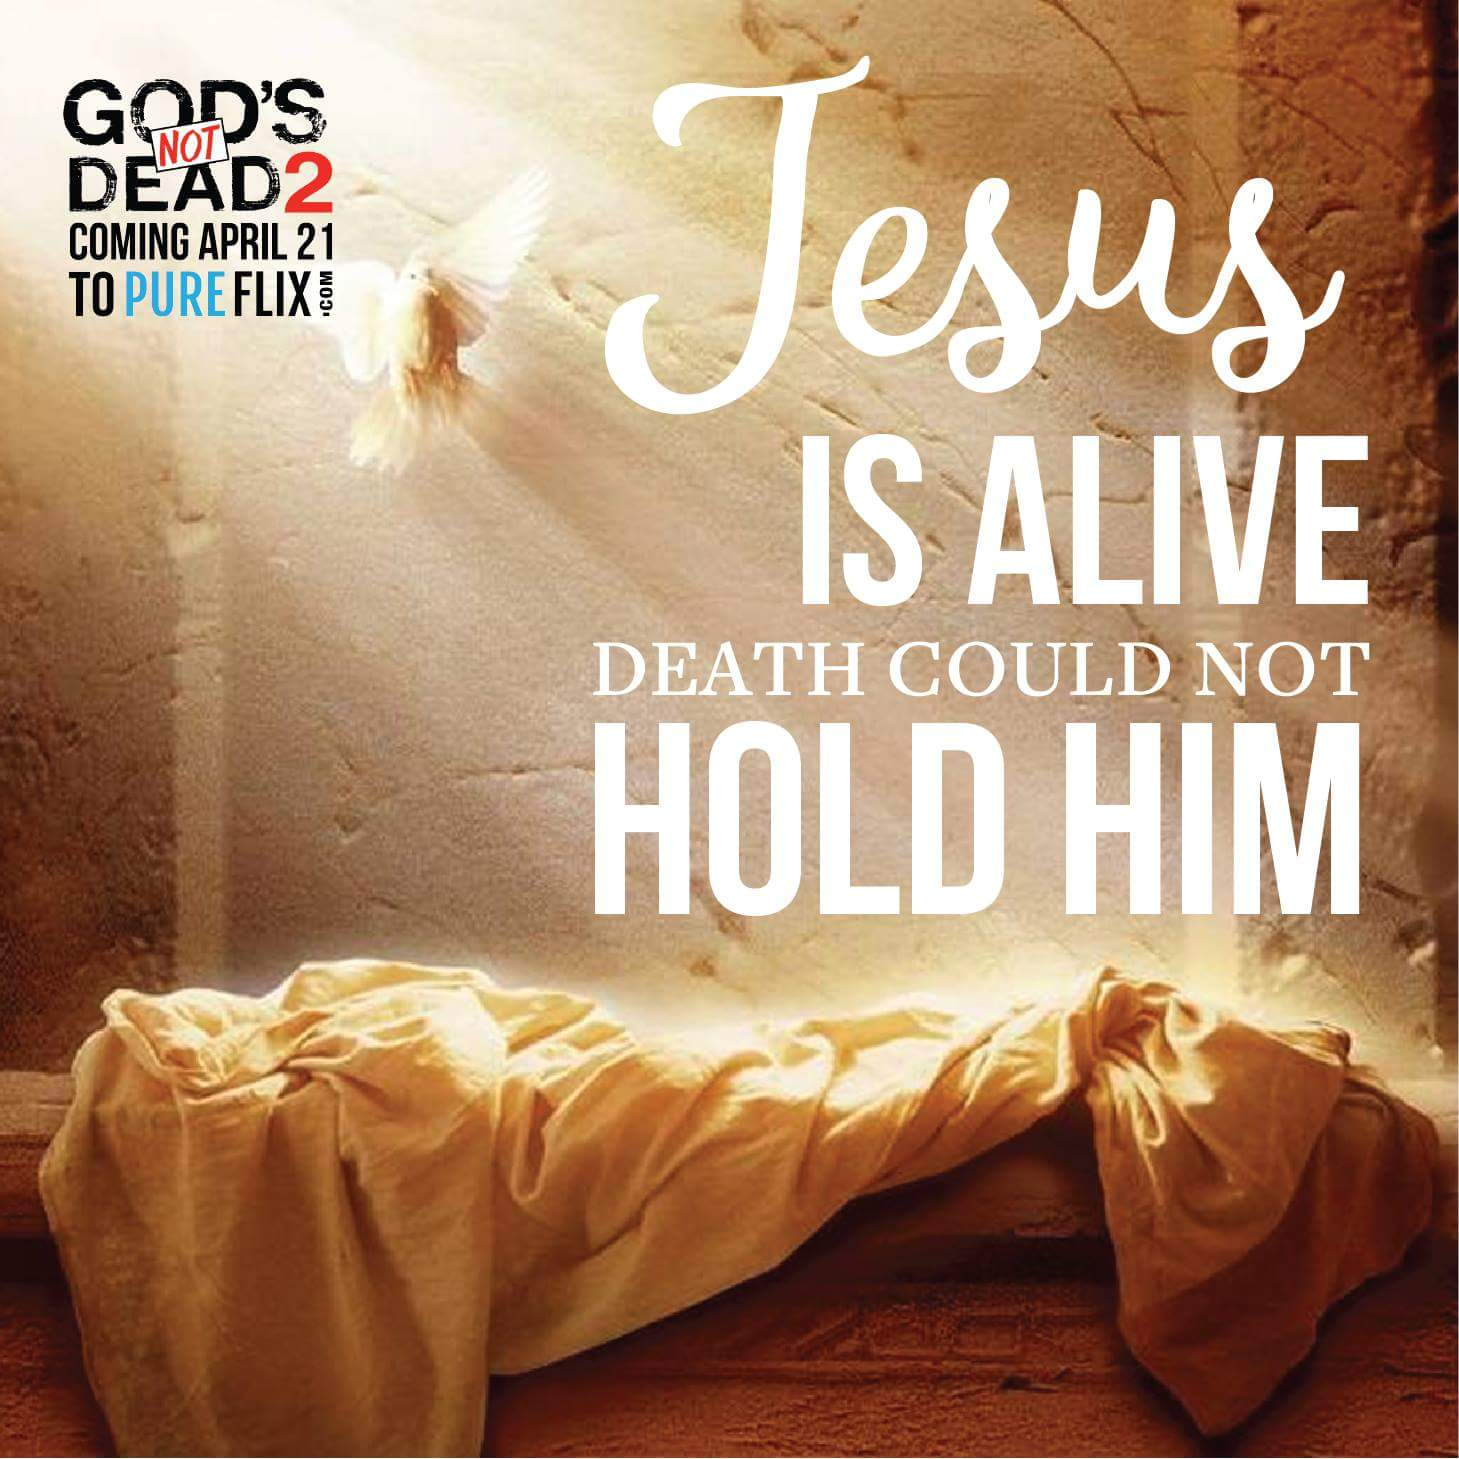 Come near God He will come near you Jesus https://t.co/zs5fYnagoz